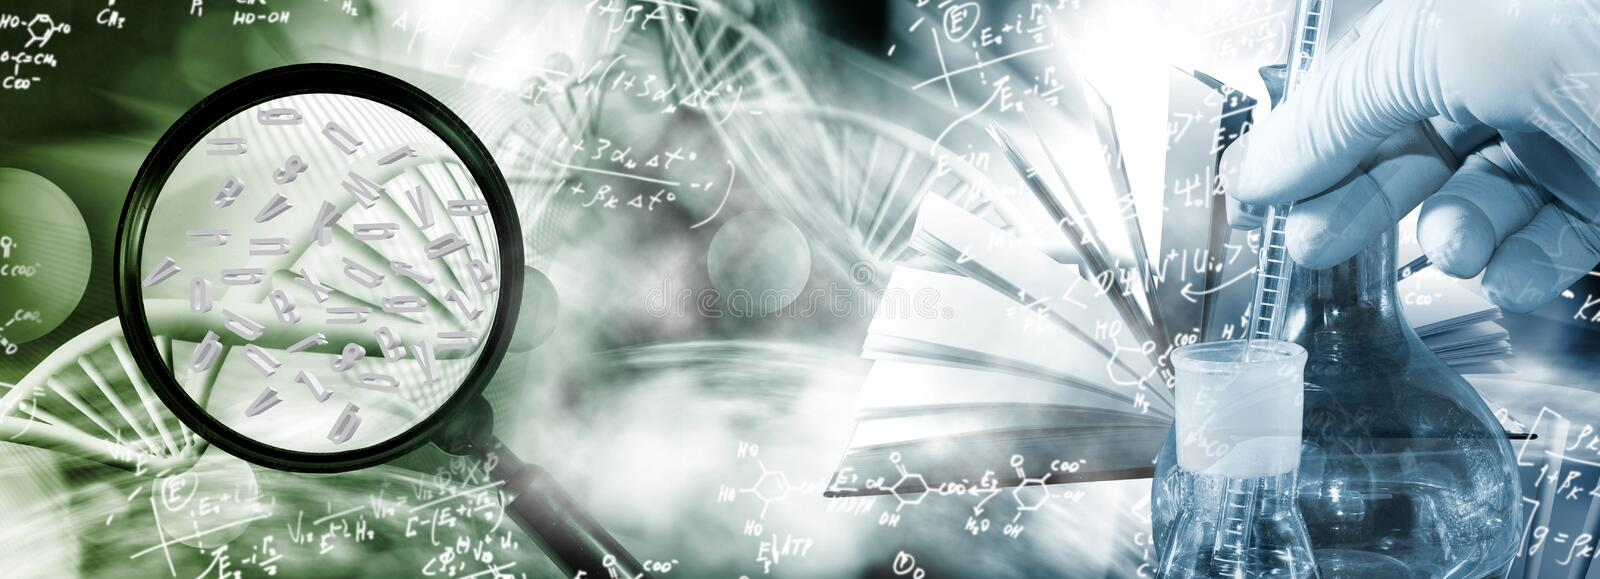 Abstract 3d image of a DNA chain and letters of the alphabet flying in space on a blurry background. Close-up.Magnifier as a symbol of research stock images